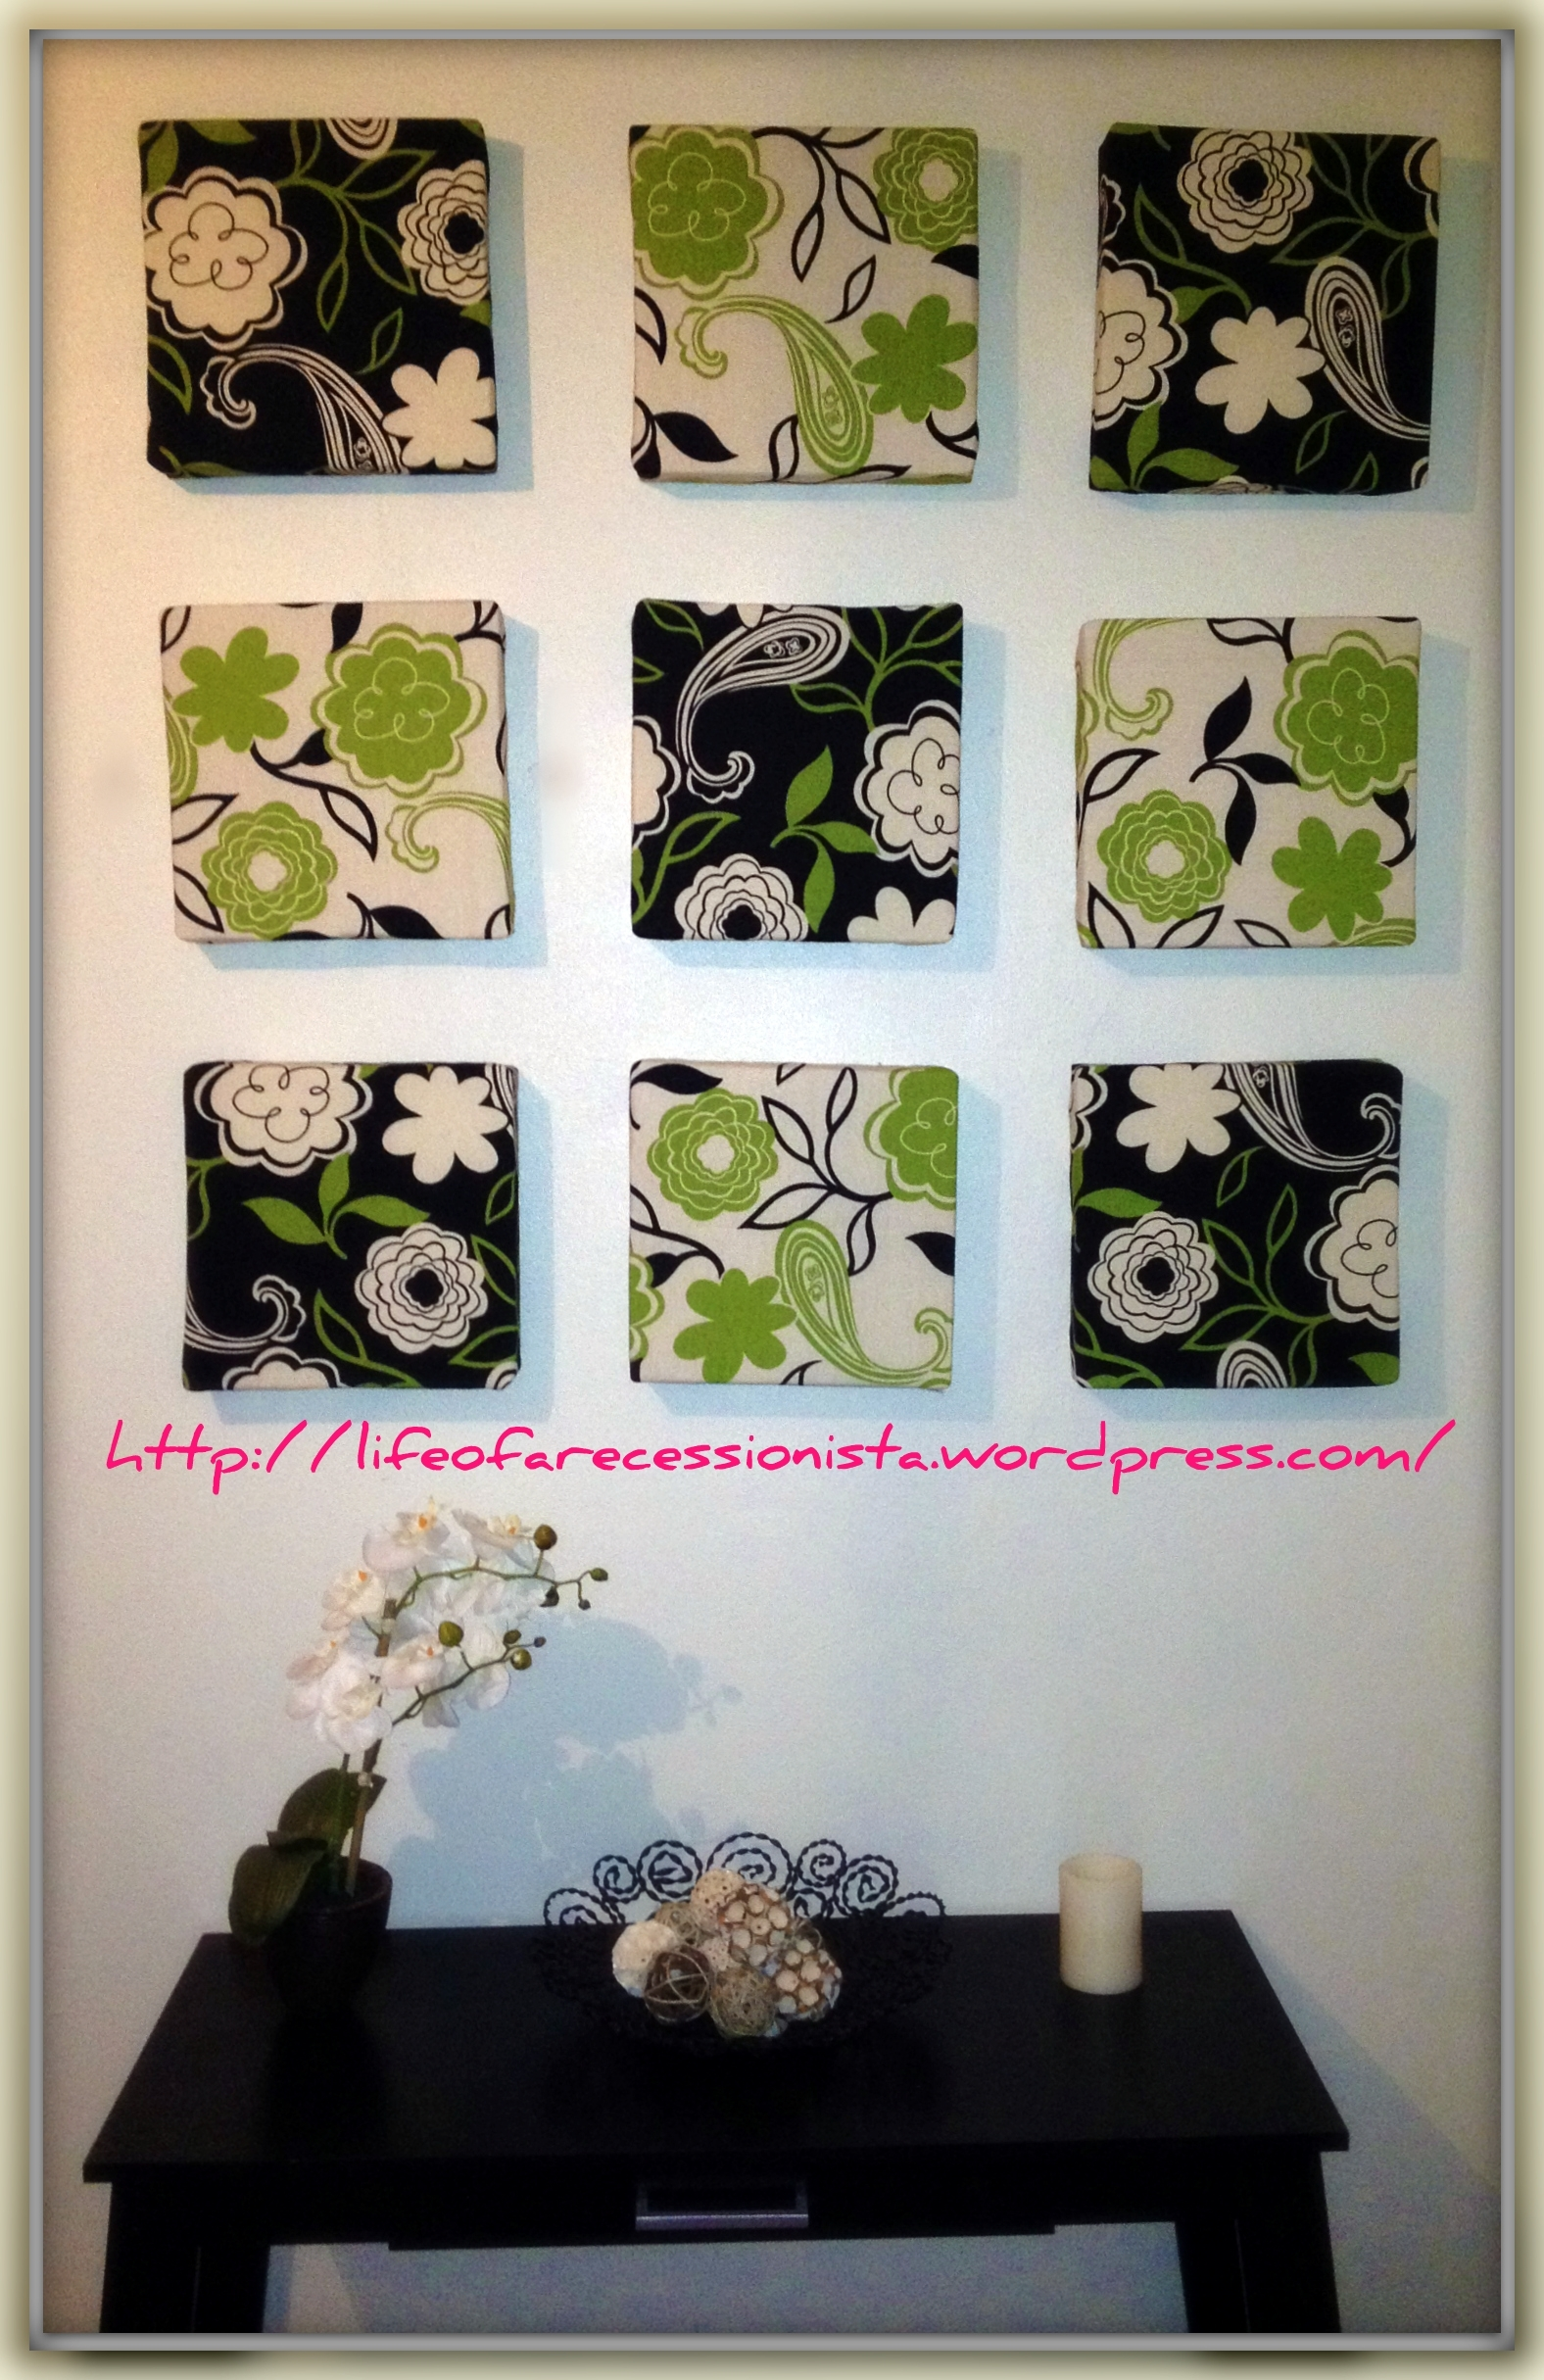 Wall Art | Life Of A Recessionista Pertaining To Most Current Fabric Covered Foam Wall Art (View 11 of 15)